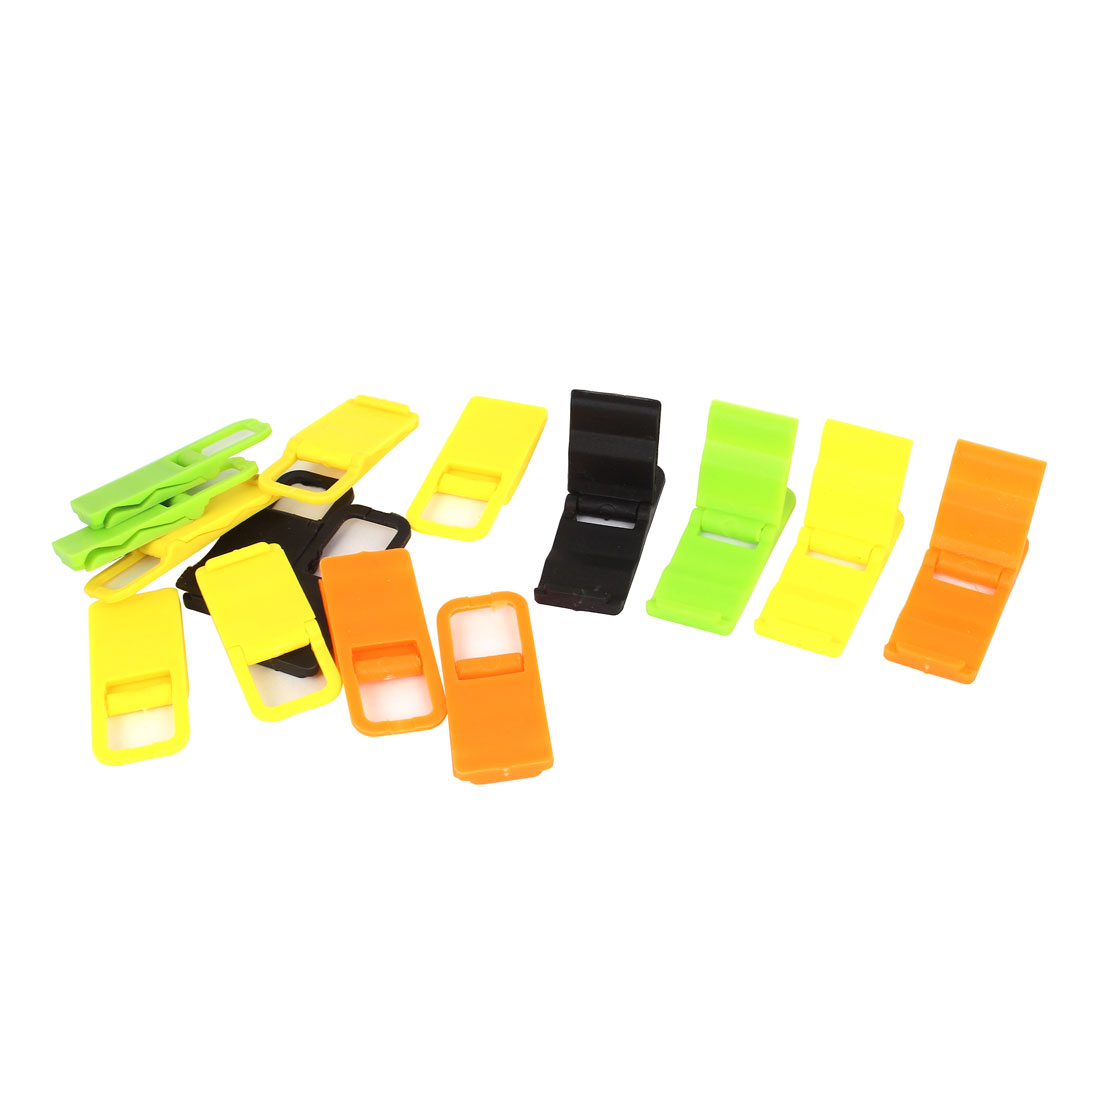 15pcs Beach Chair Mobile Phone Folding Holder Stand Bracket Support Multicolor